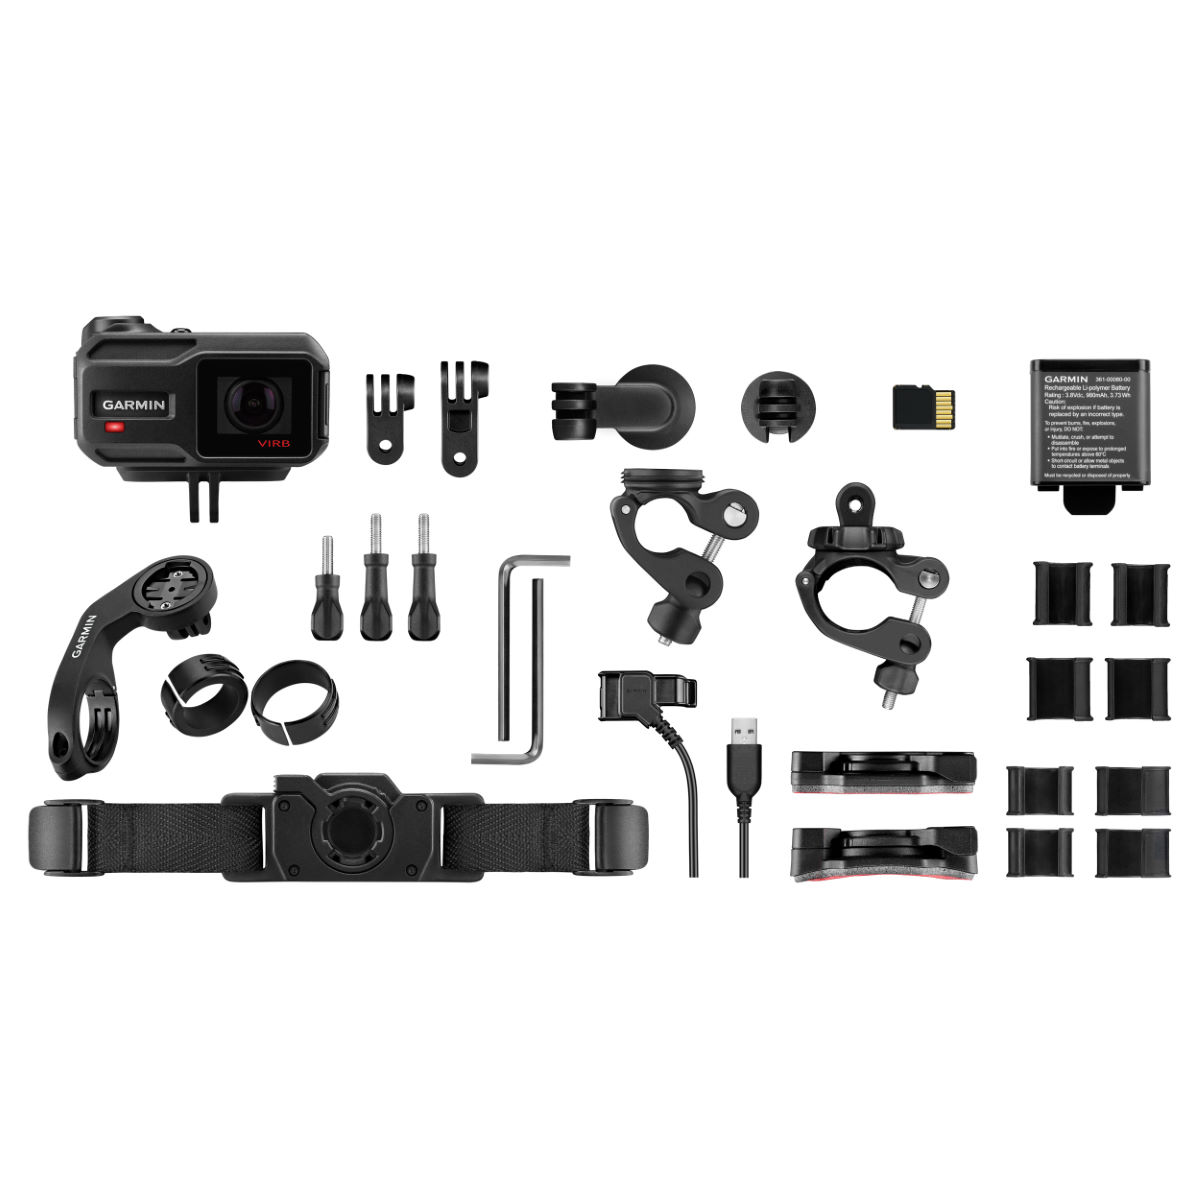 Garmin VIRB XE Action Camera Cycling Bundle   Helmet Cameras